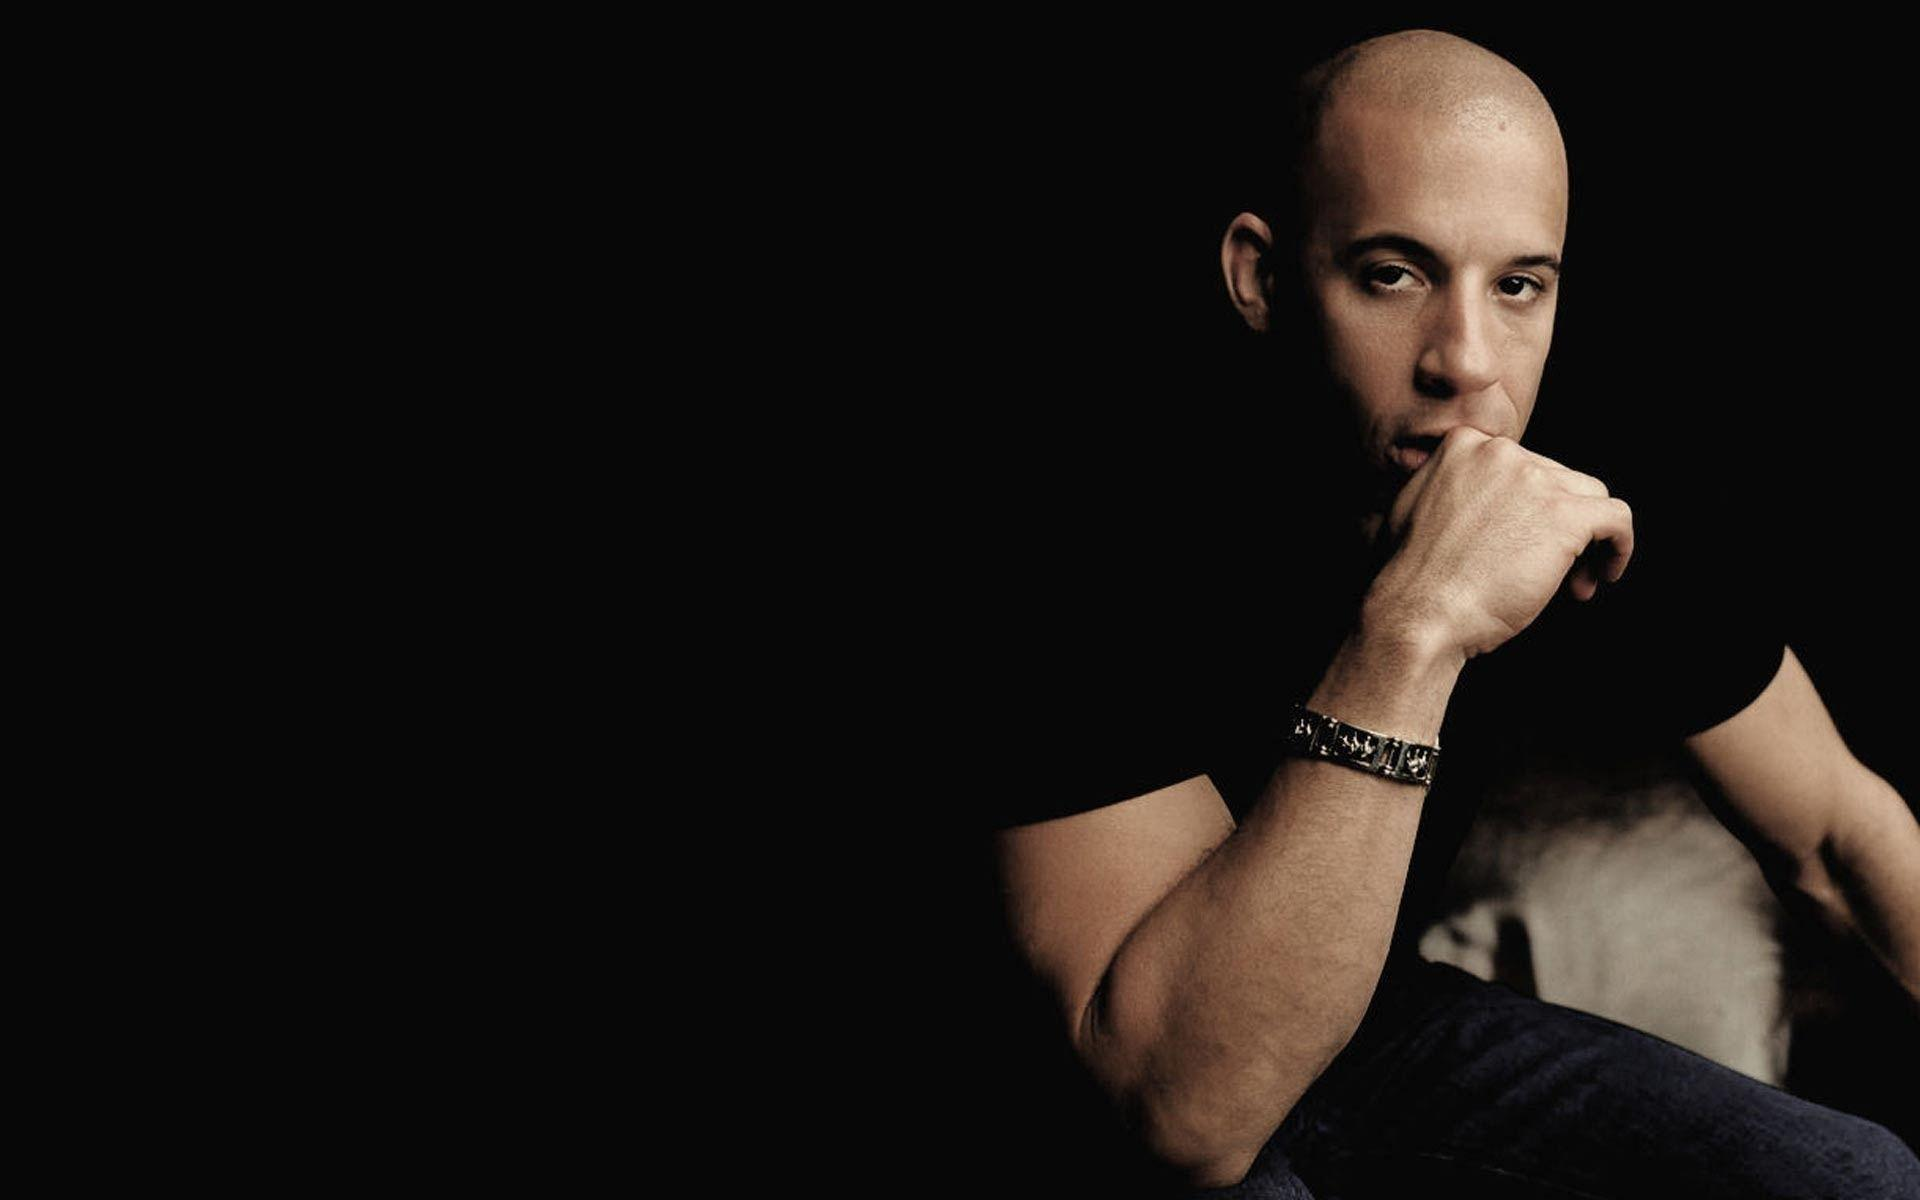 Vin Diesel HD Wallpapers Free Download | HD Free Wallpapers Download